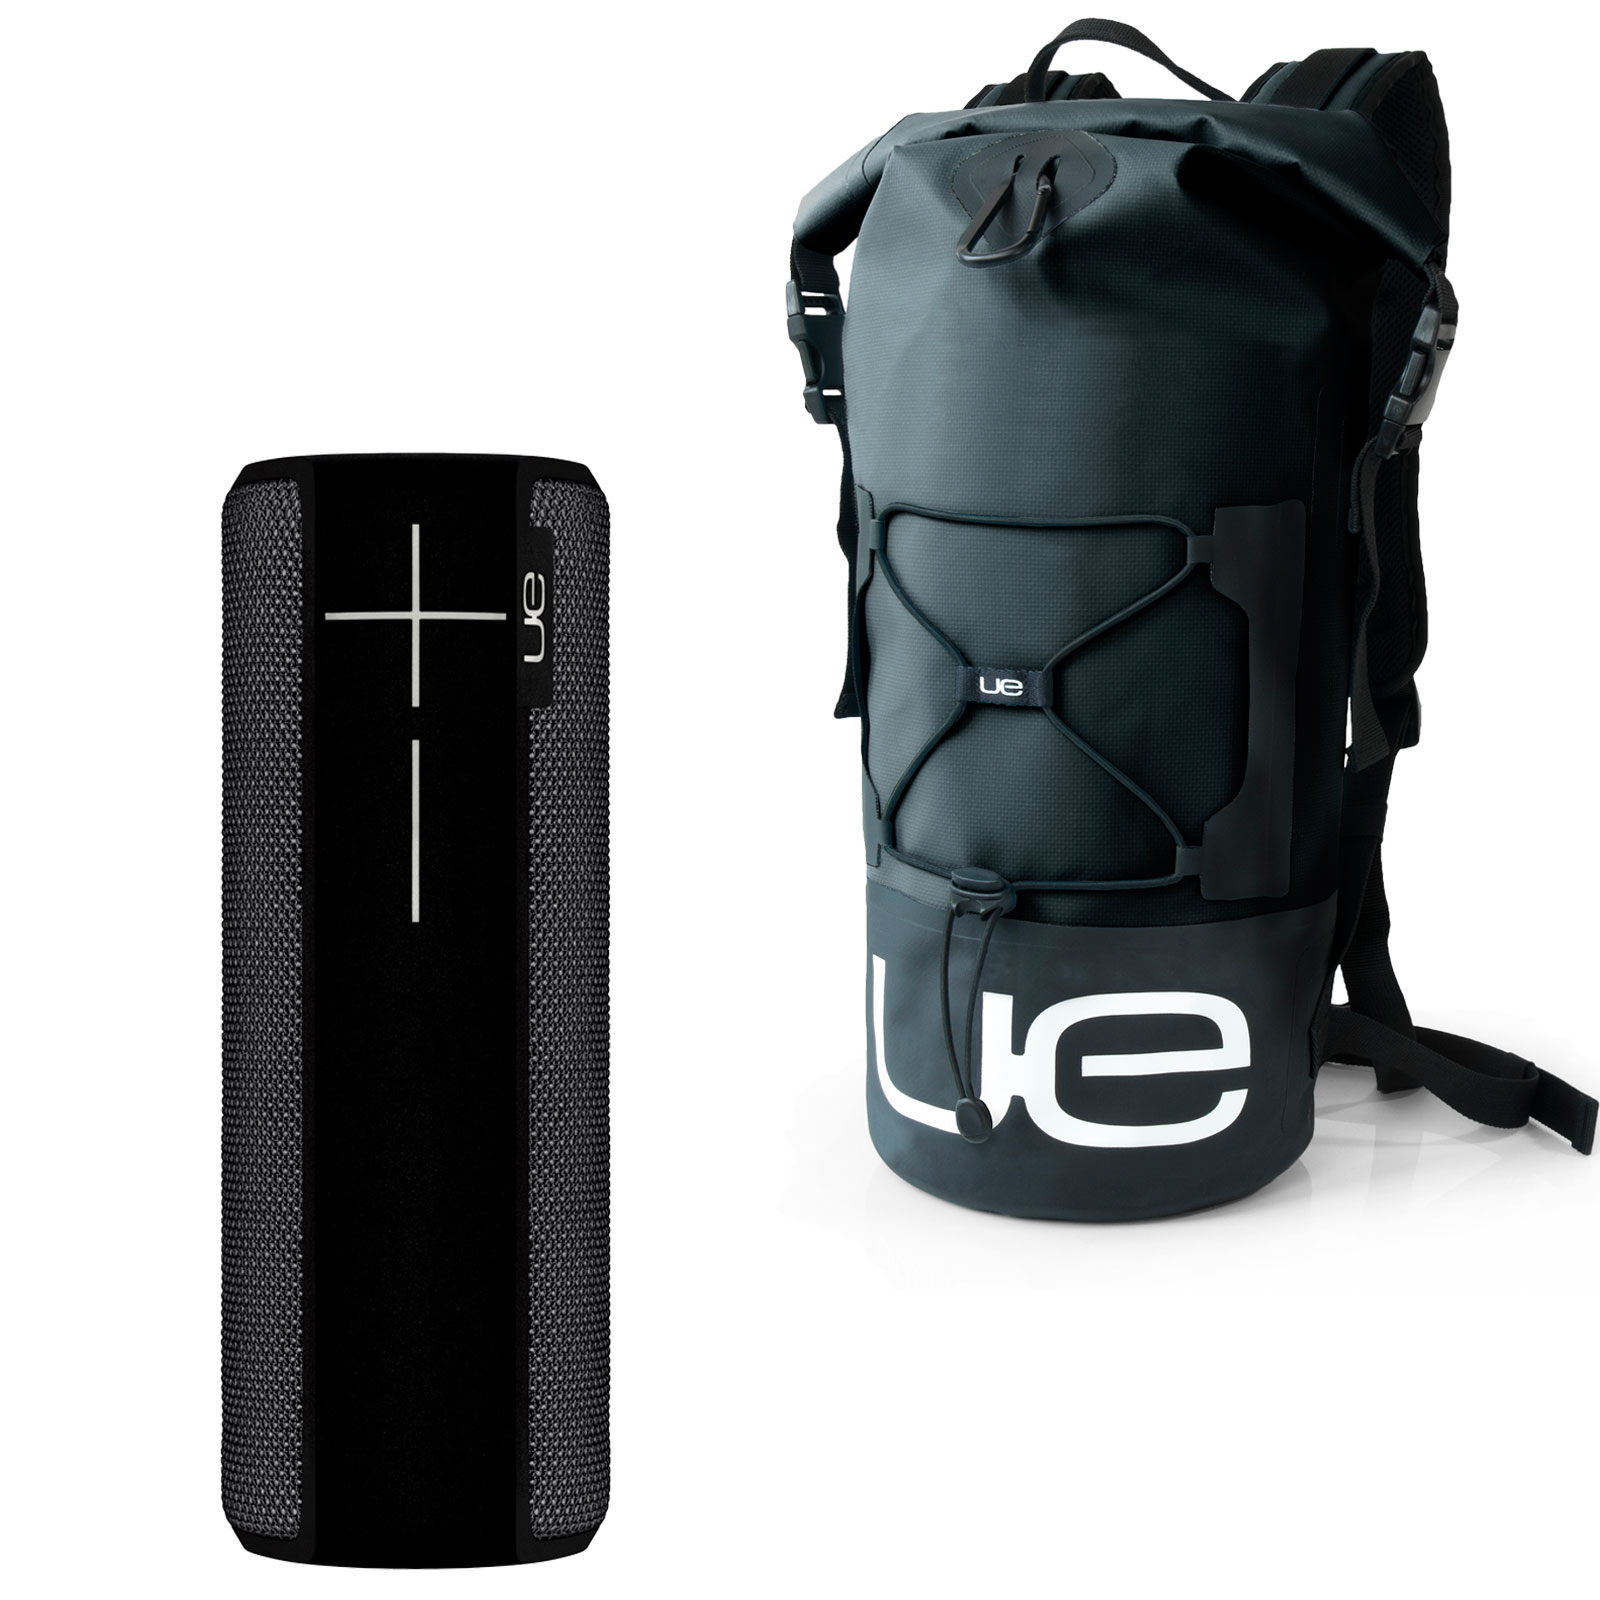 ue boom 2 noir backpack waterproof offert dock enceinte bluetooth ultimate ears sur ldlc. Black Bedroom Furniture Sets. Home Design Ideas